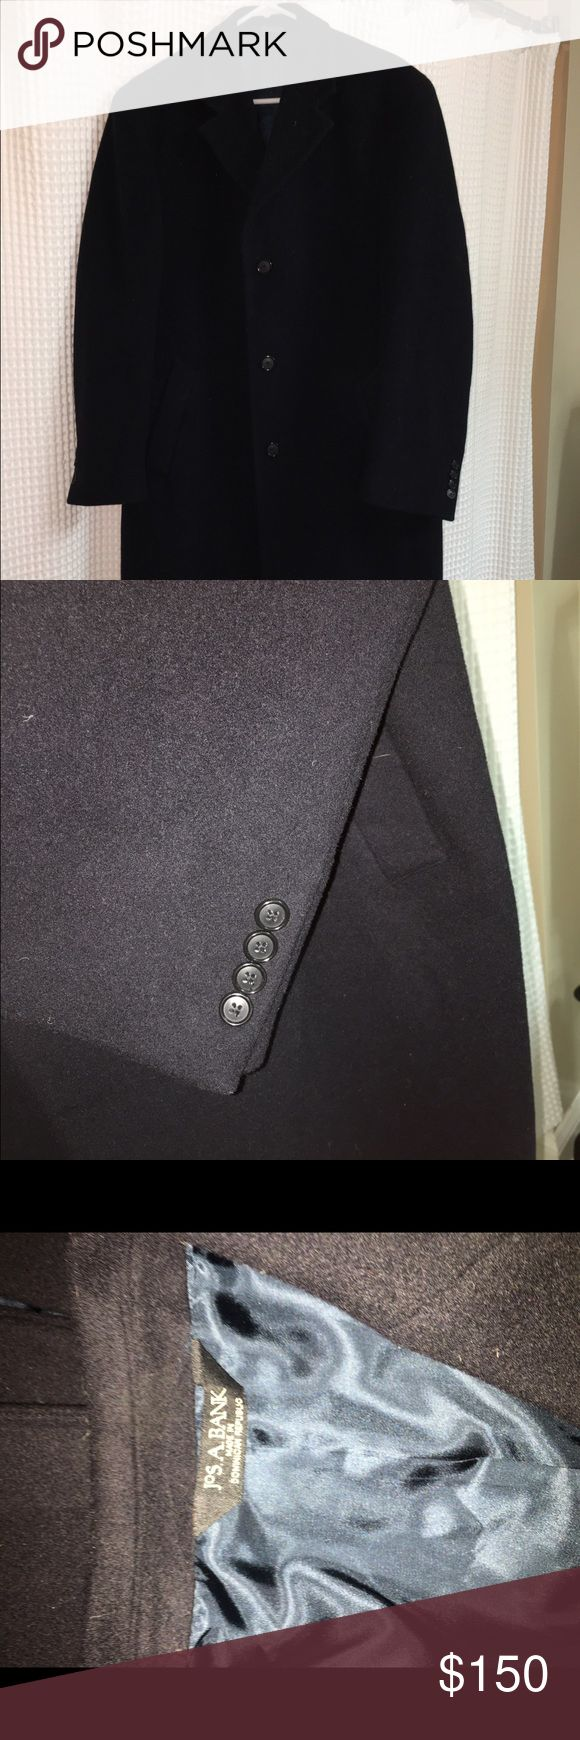 Beautiful navy blue men's wool overcoat Never worn beautiful men's wool overcoat in navy blue! Amazing coat but have never lived in a location cold enough for the coat. Someone will get a great deal on this one!!!! Joseph A Bank Jackets & Coats